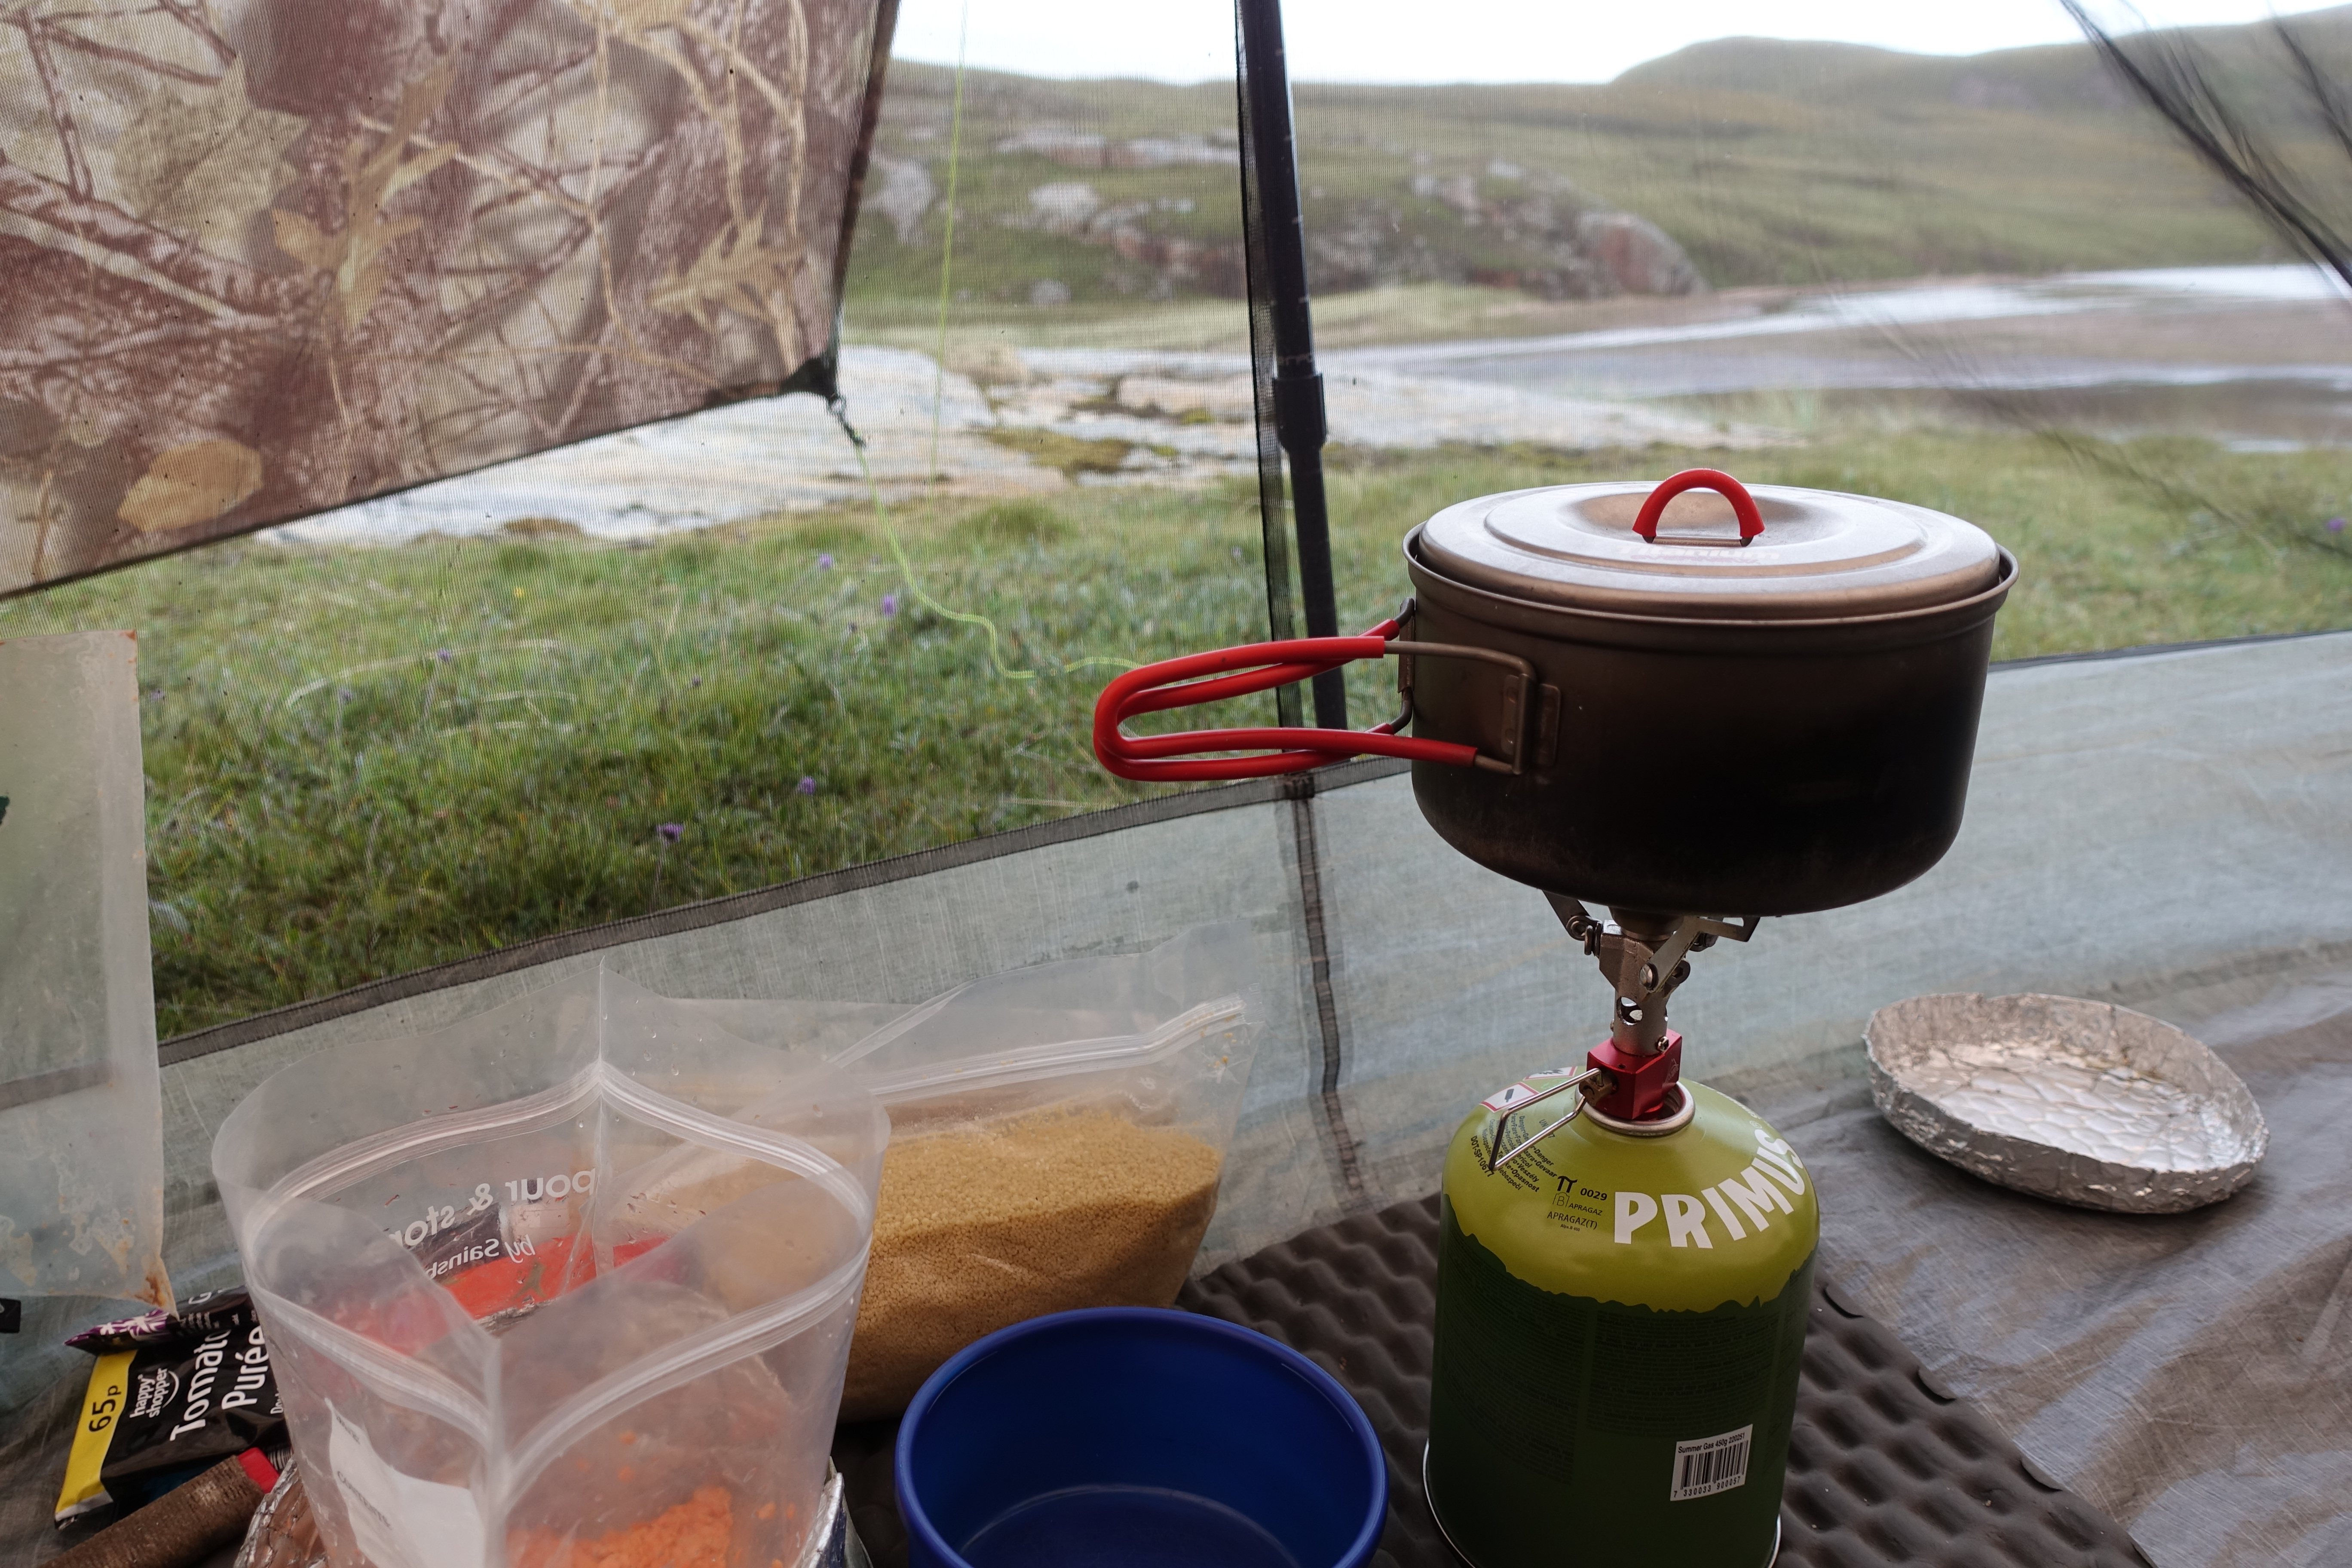 Cooking inside Z Packs Duplex on the penultimate night on the Cape Wrath Trail. Midges have driven me inside and a sit mat has provided a flat stable floor on which to set up a stove